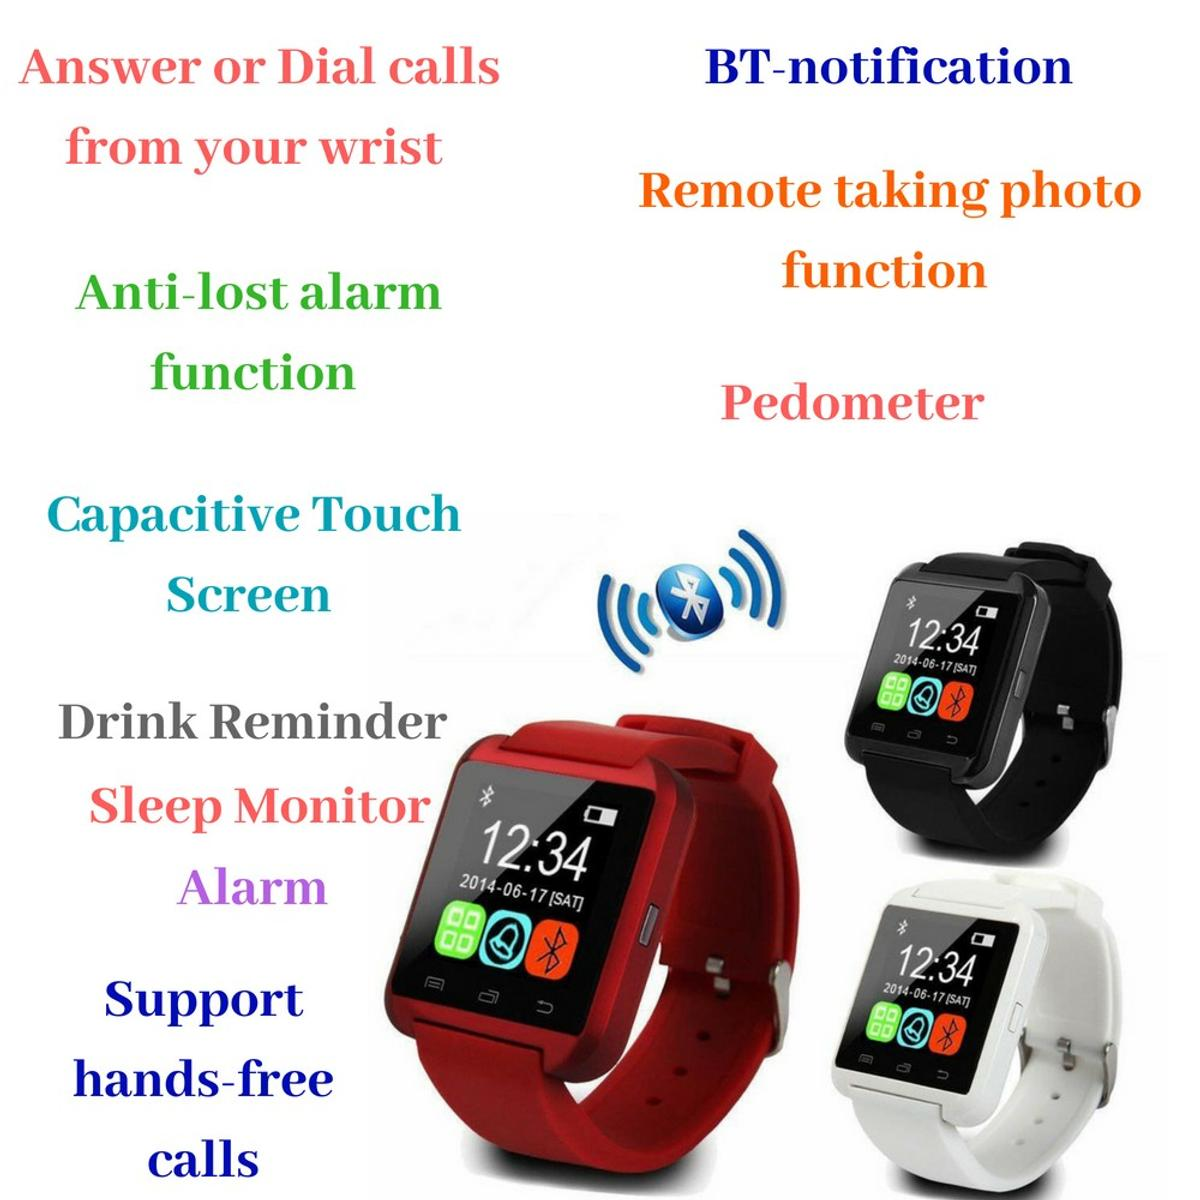 2018 UK Top Selling Bluetooth Smartwatch in B97 Redditch for